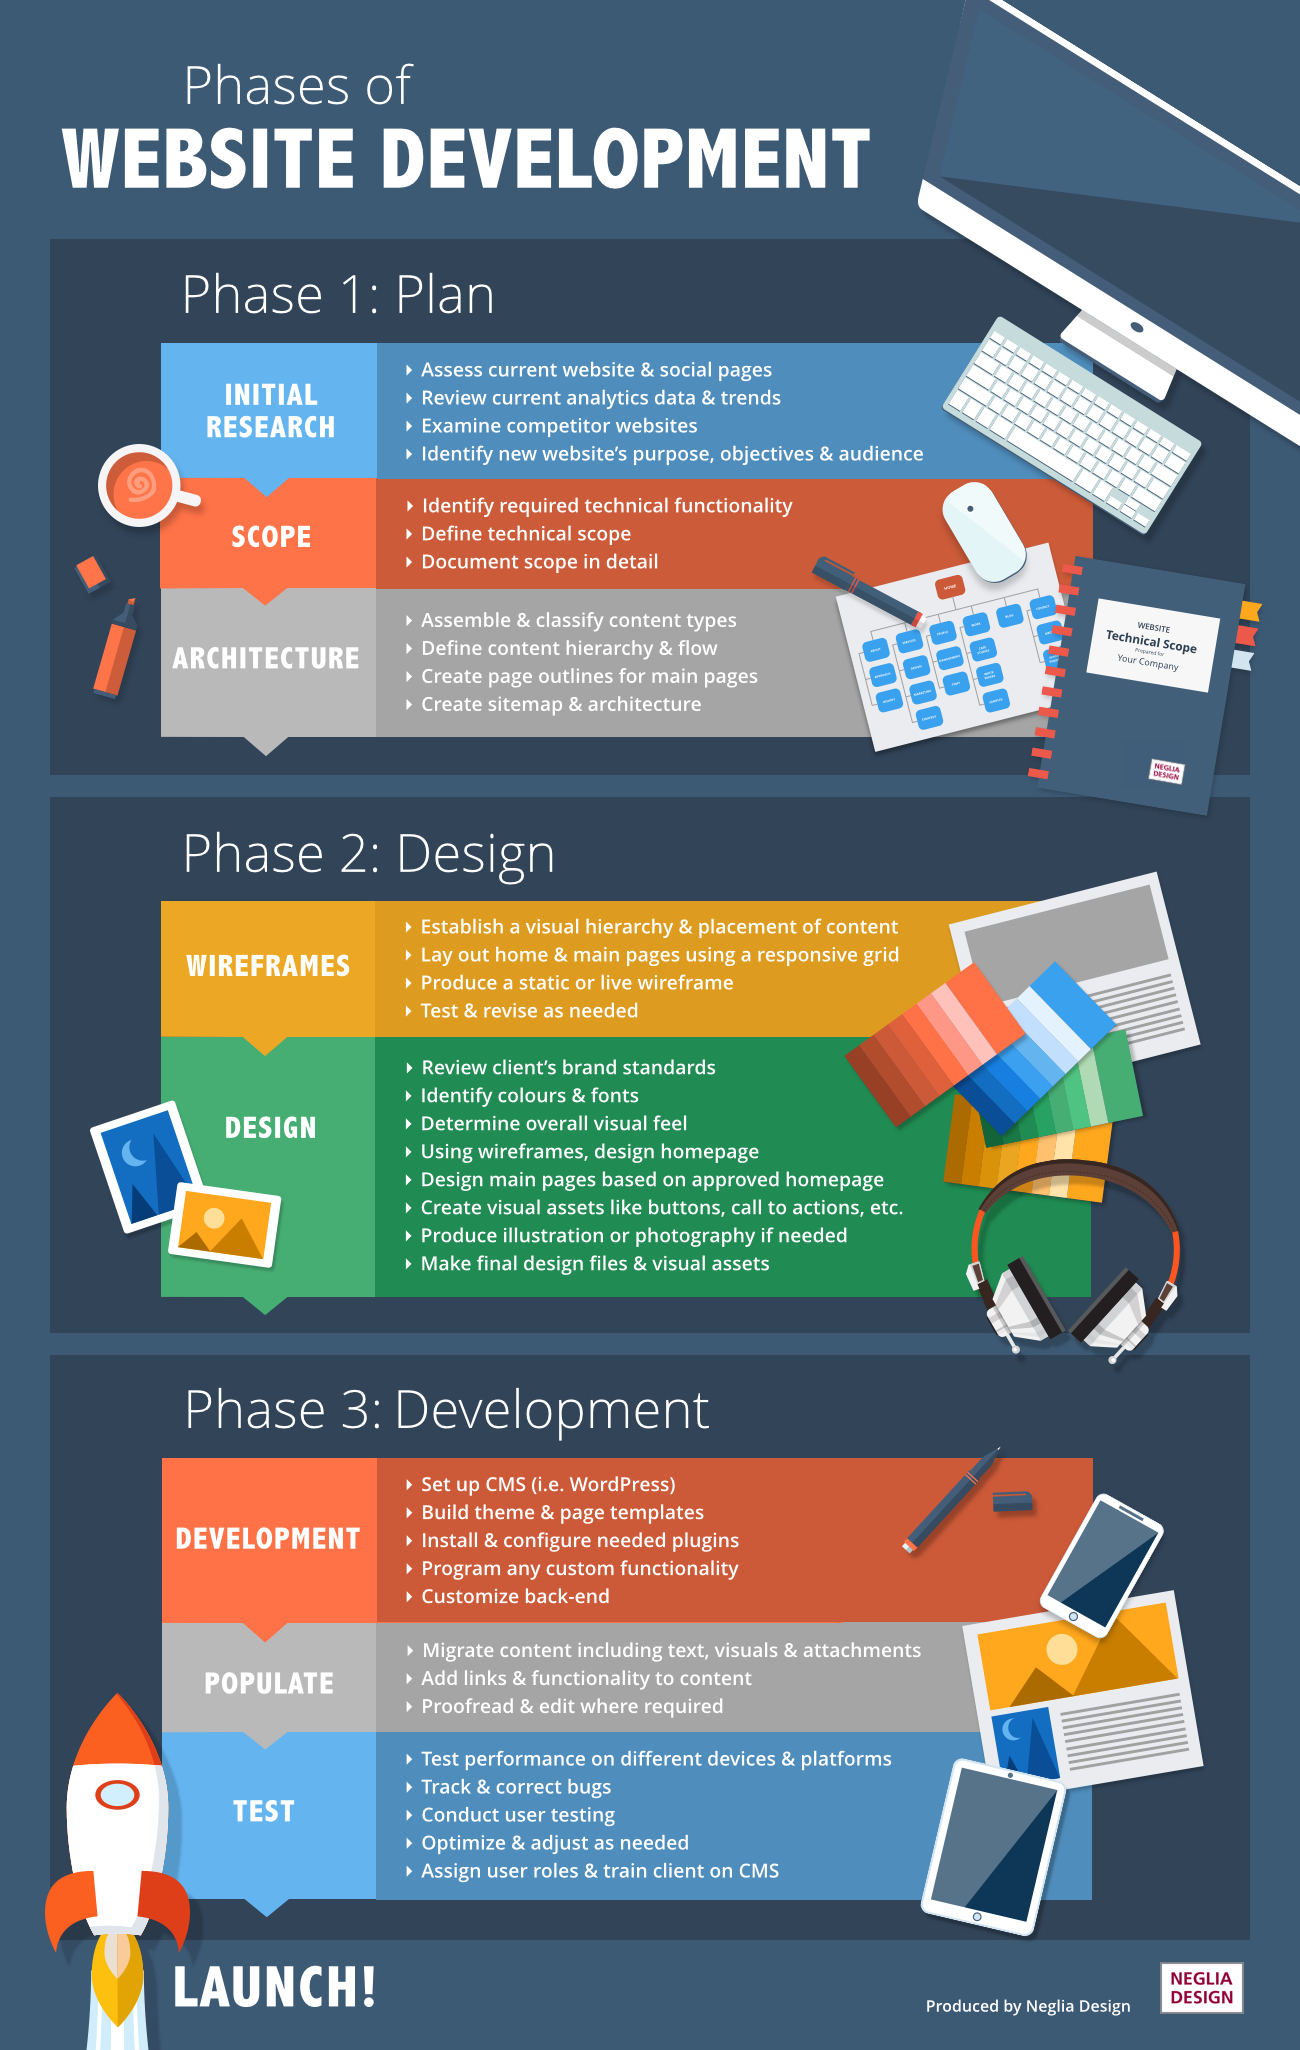 Website Development Info graphic 2